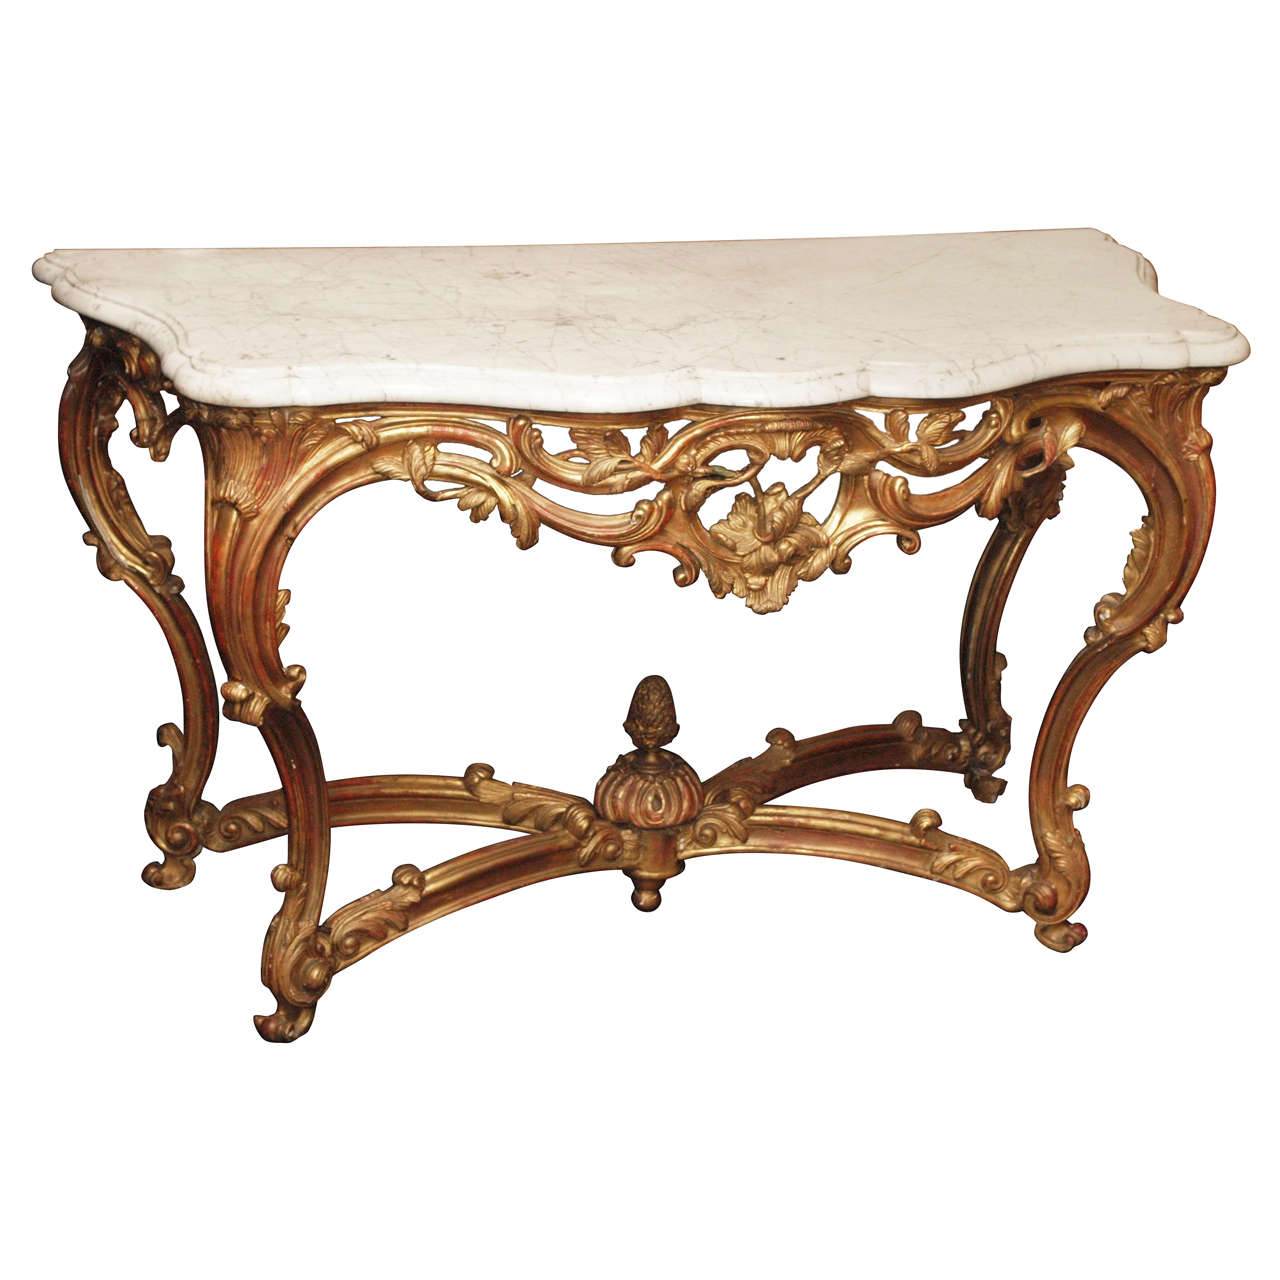 French Connection Gunmetal Coffee Table: Louis XVI French Gilt Wood And Marble Top Table At 1stdibs